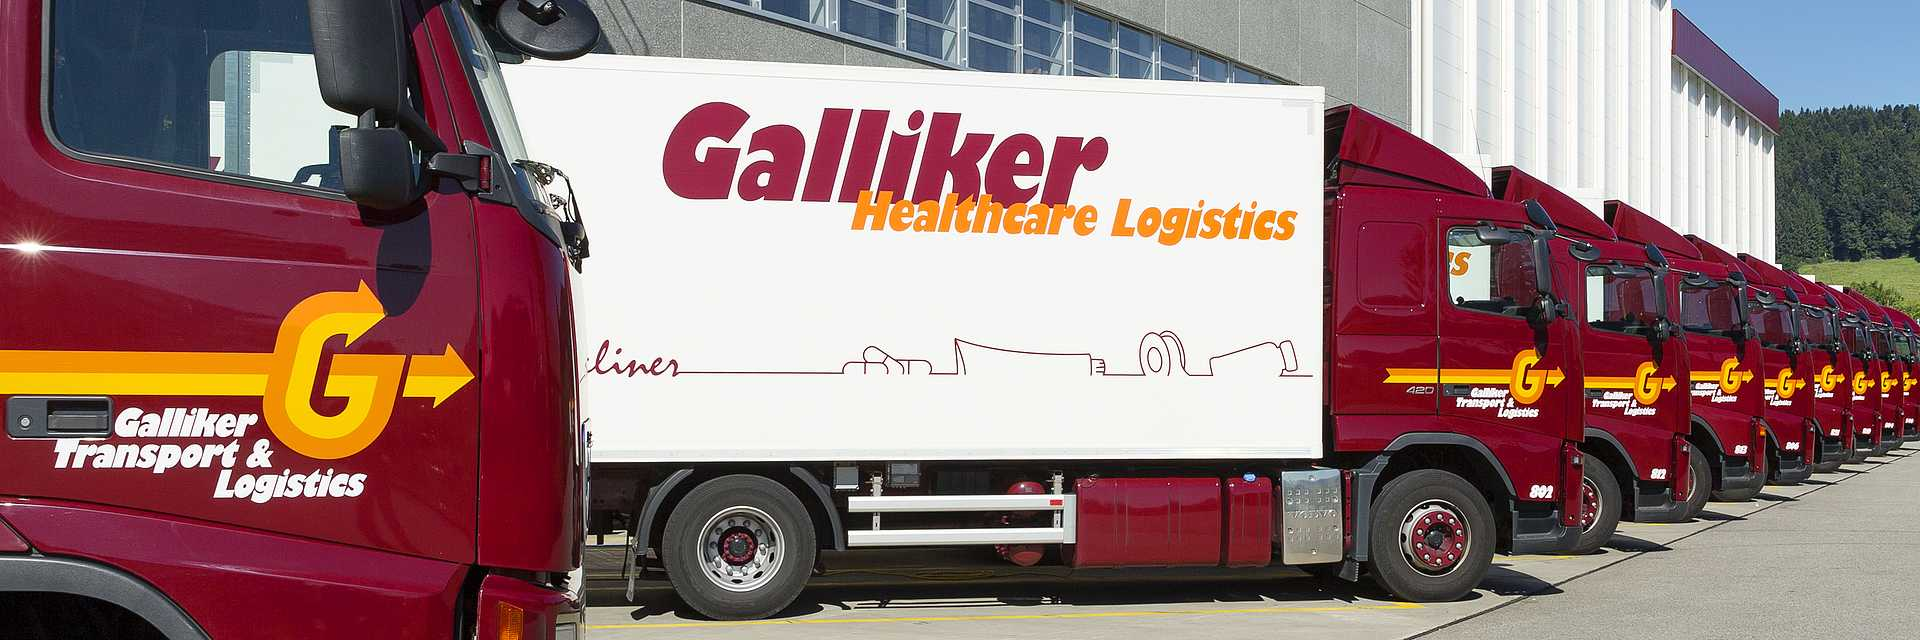 Galliker Transport Logistik TopPicture 085